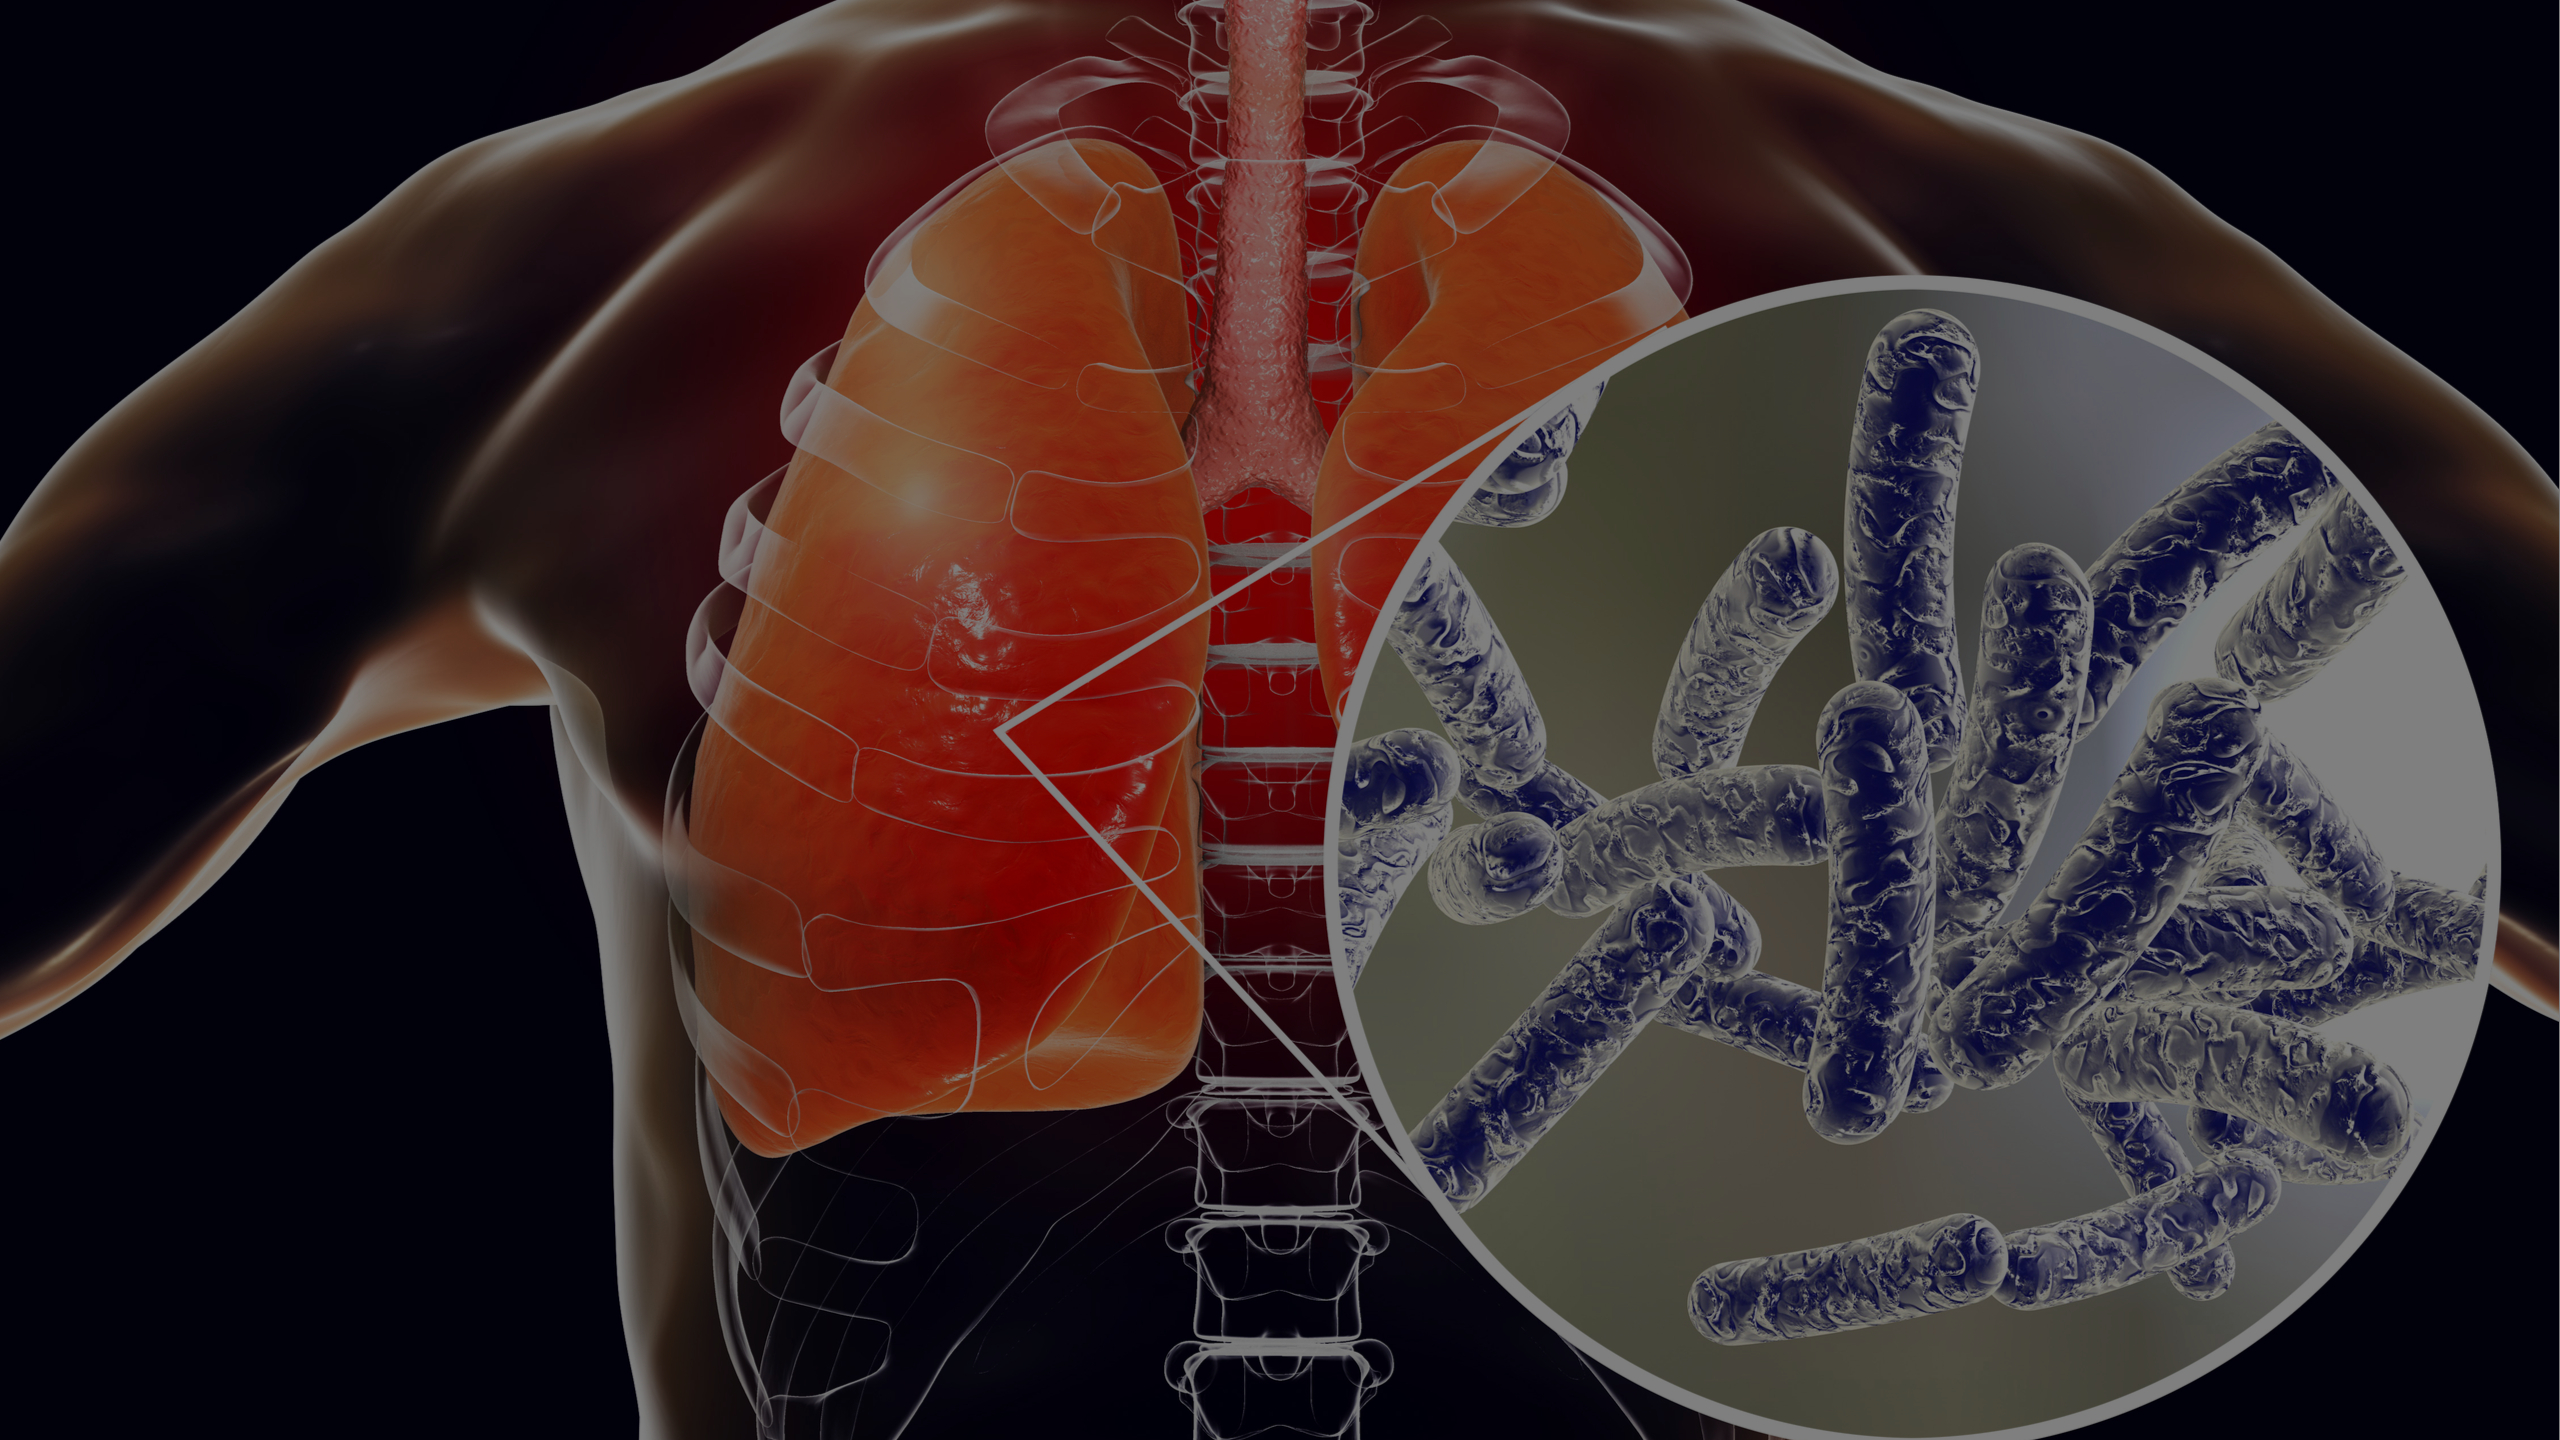 What Else Do You Need To Know About Legionella?